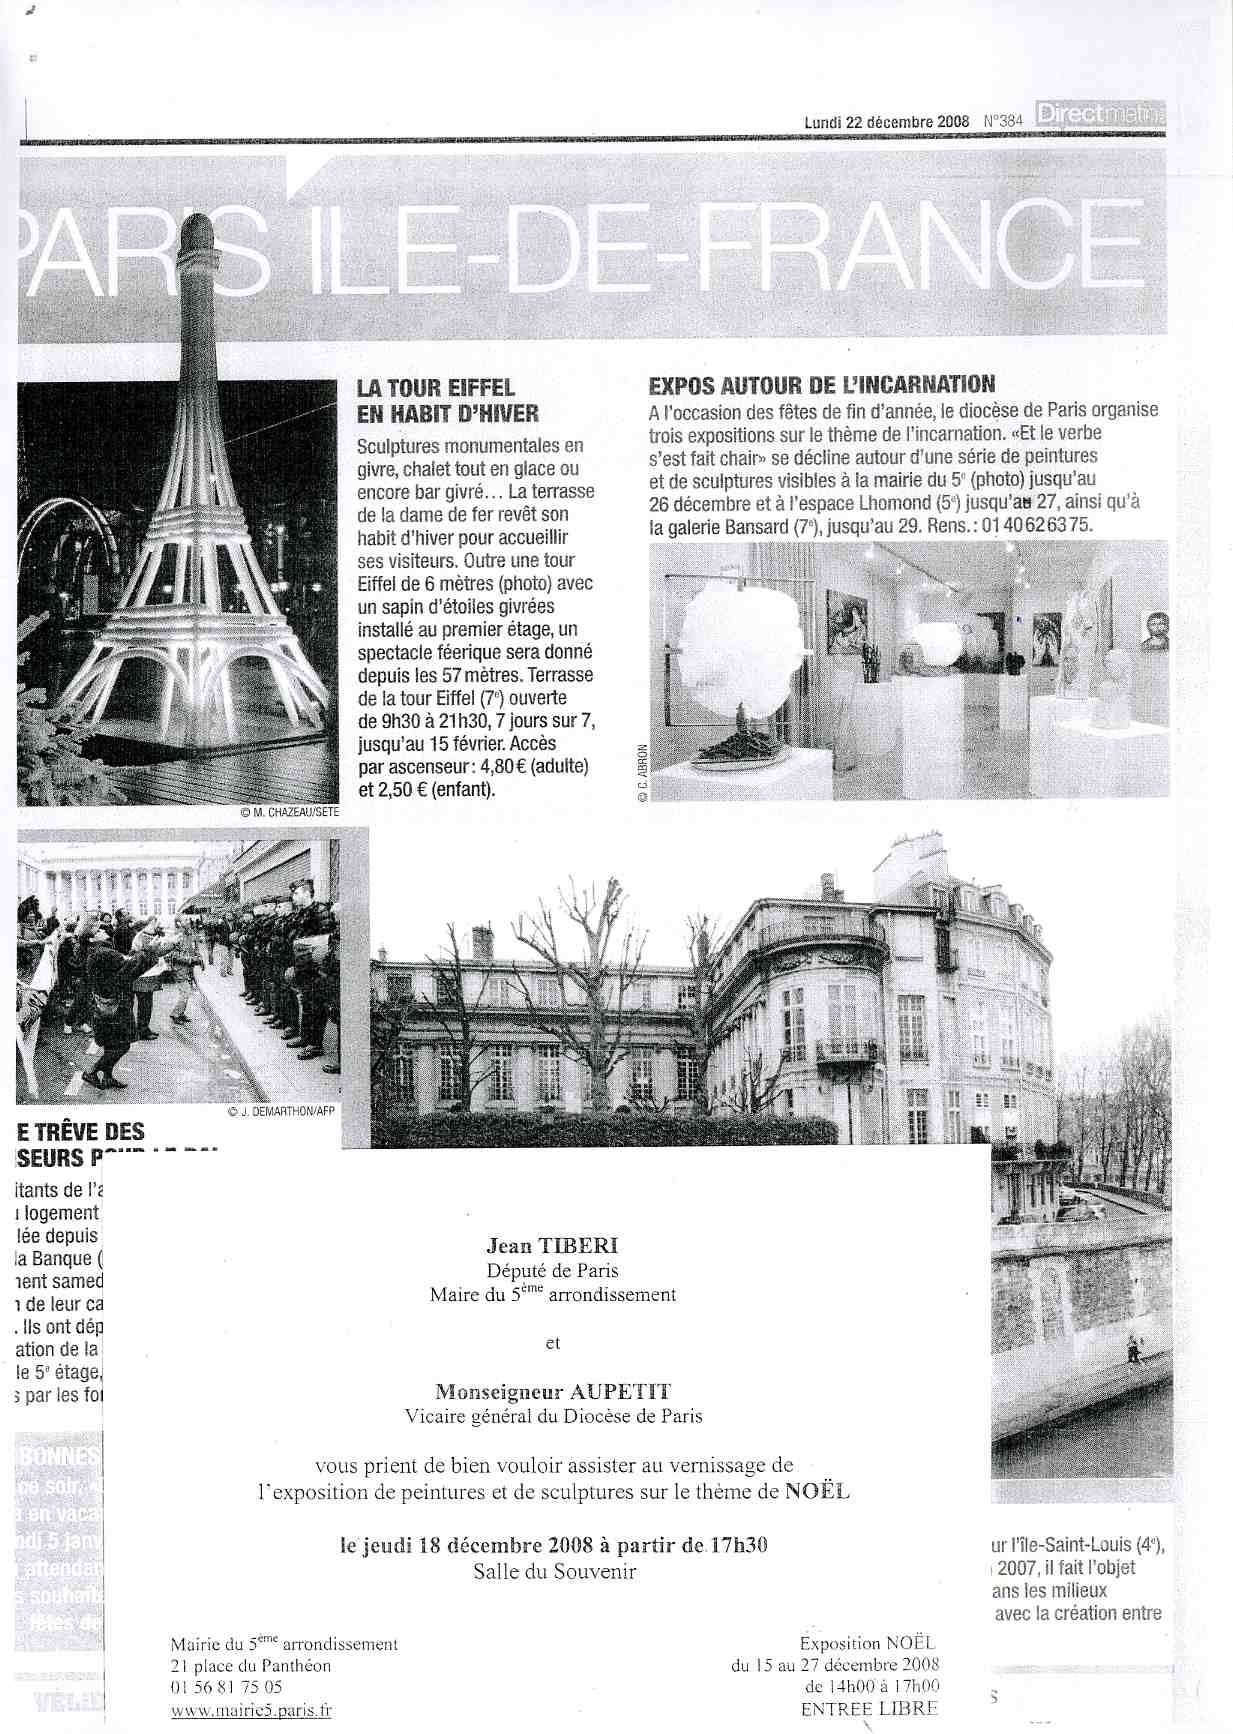 Article dans Direct Matin - 2008